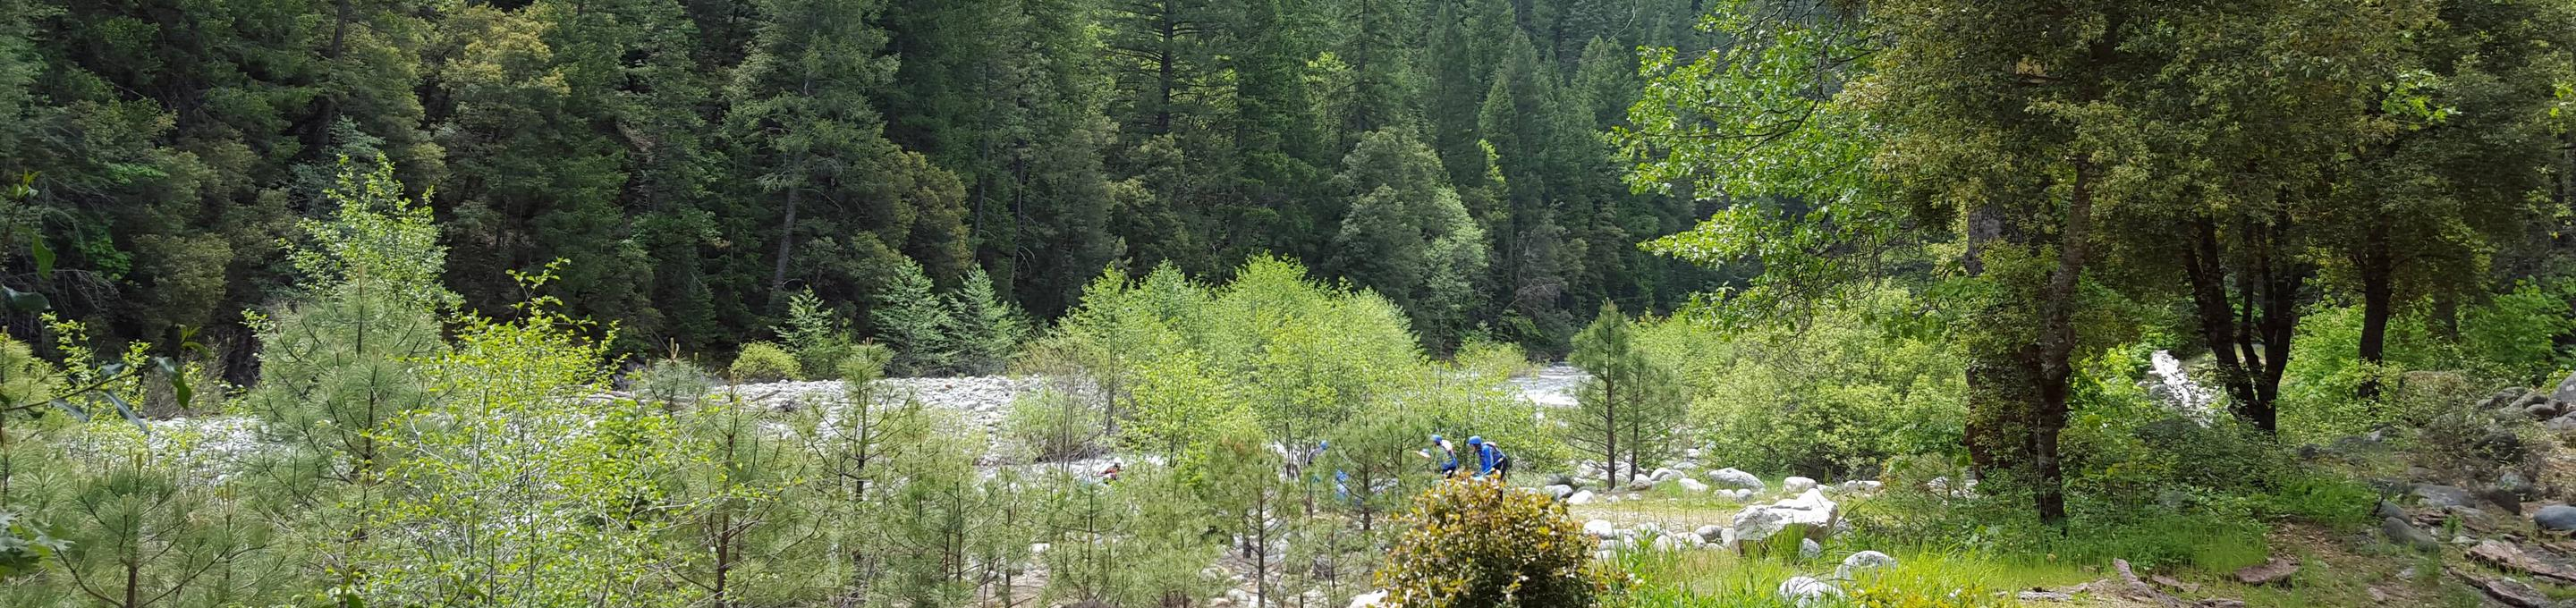 Whitewater Rafting, North Fork Yuba RiverNorth Fork Yuba River near Indian Valley